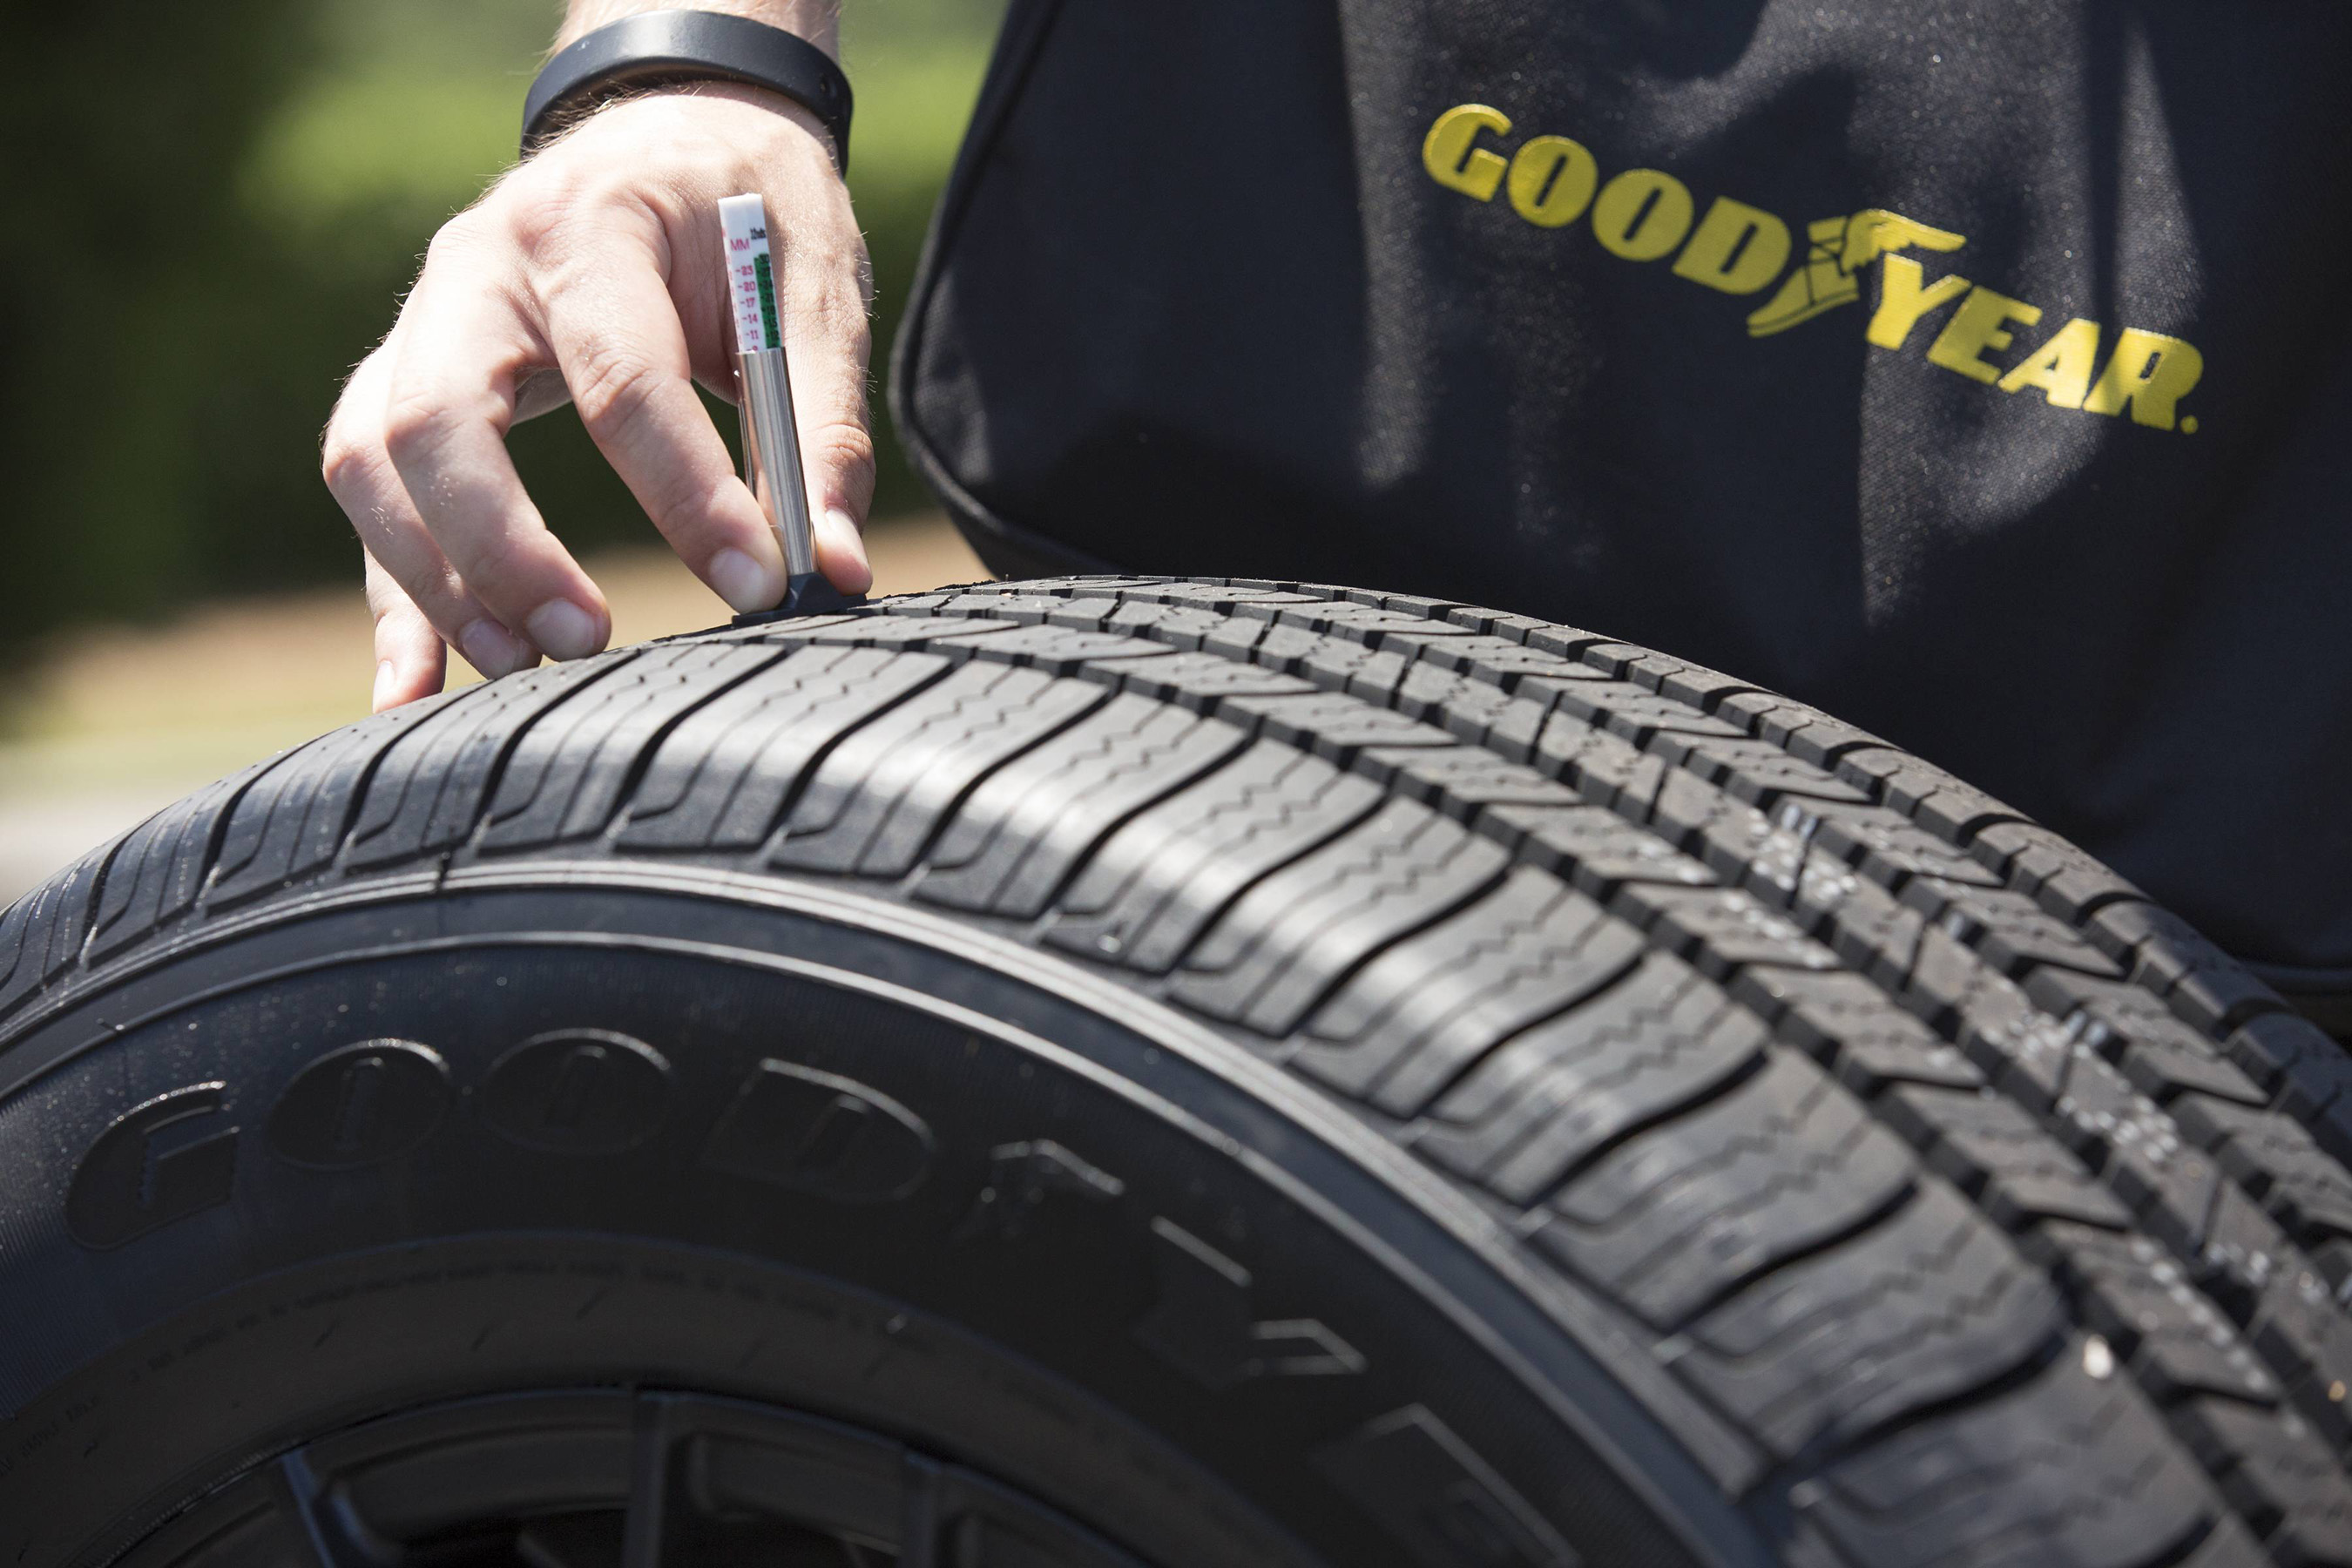 Leading into National Tire Safety Week (May 29 – June 4), NASCAR champion, Kevin Harvick, and the Goodyear Tire & Rubber Company surprised consumers at the Concord Mills Mall in Concord, NC with free tire checks.